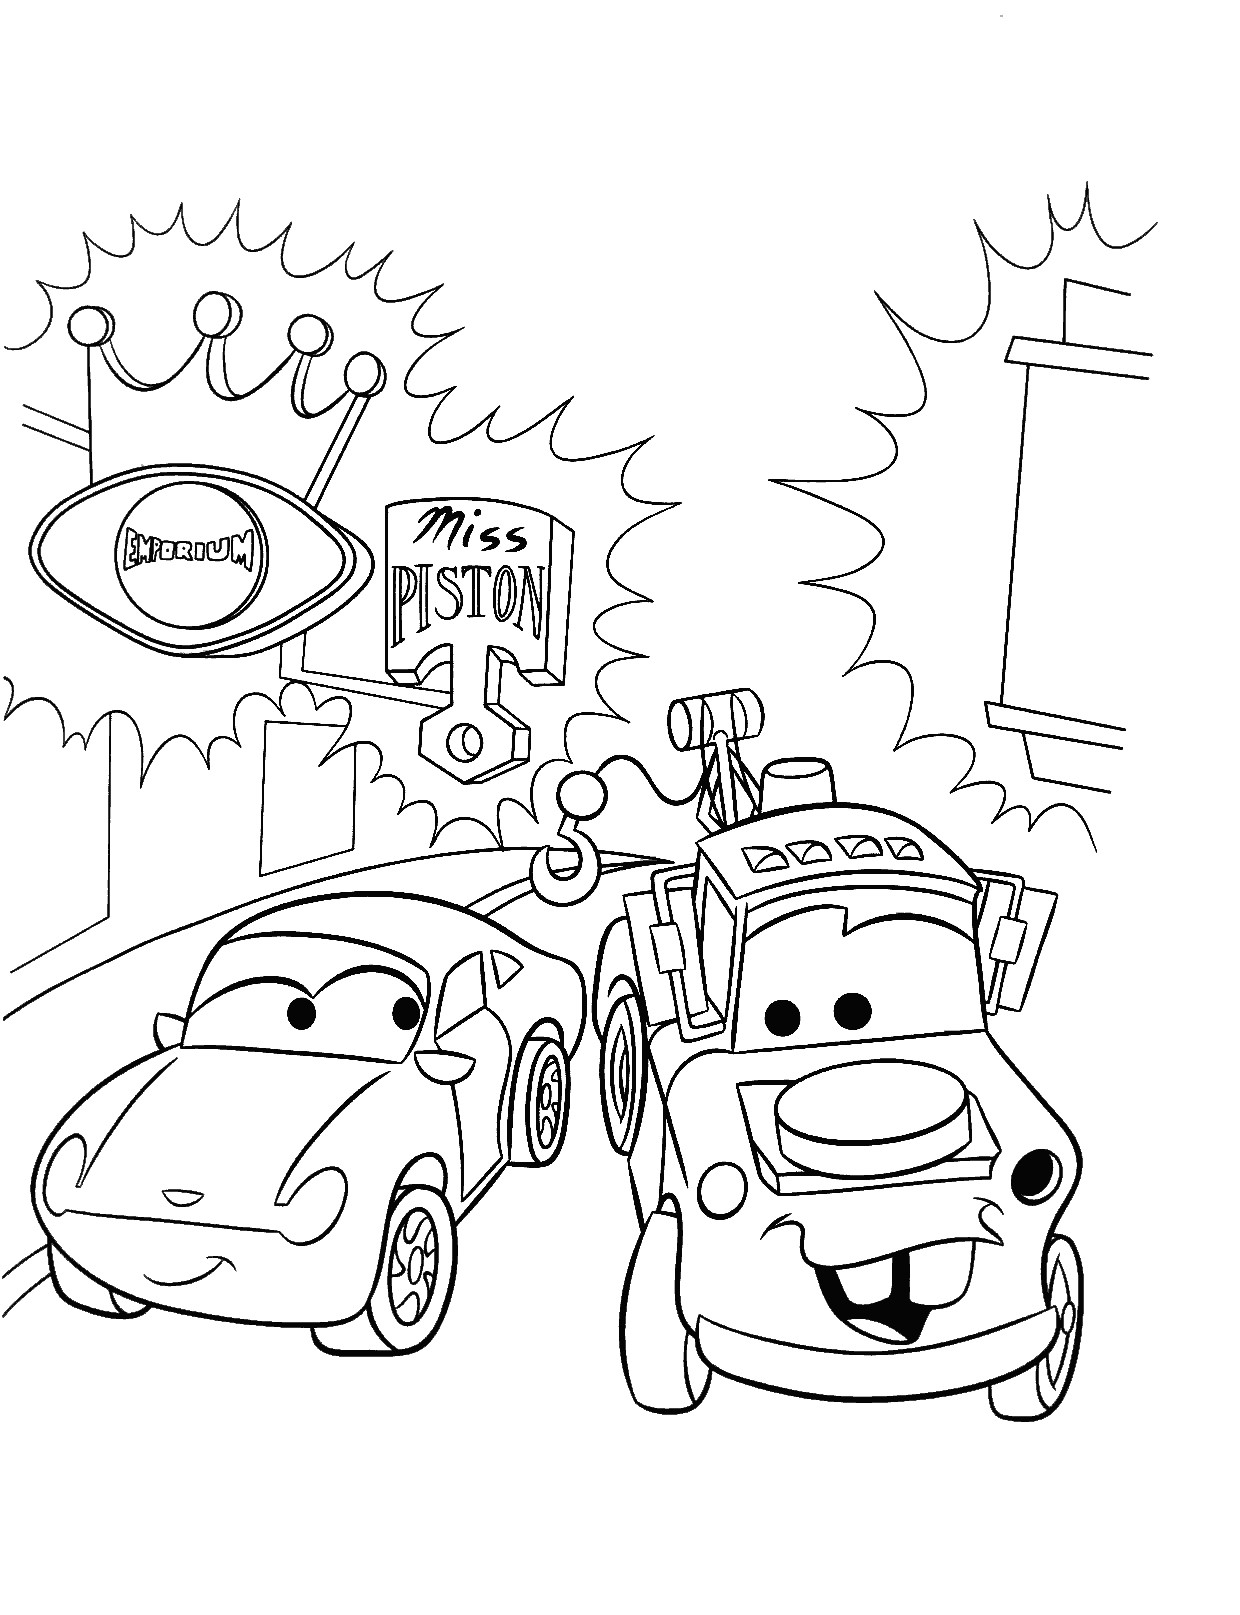 1240x1615 Best Of Mater And Tractor Coloring Pages For Kids Unique Fantastic